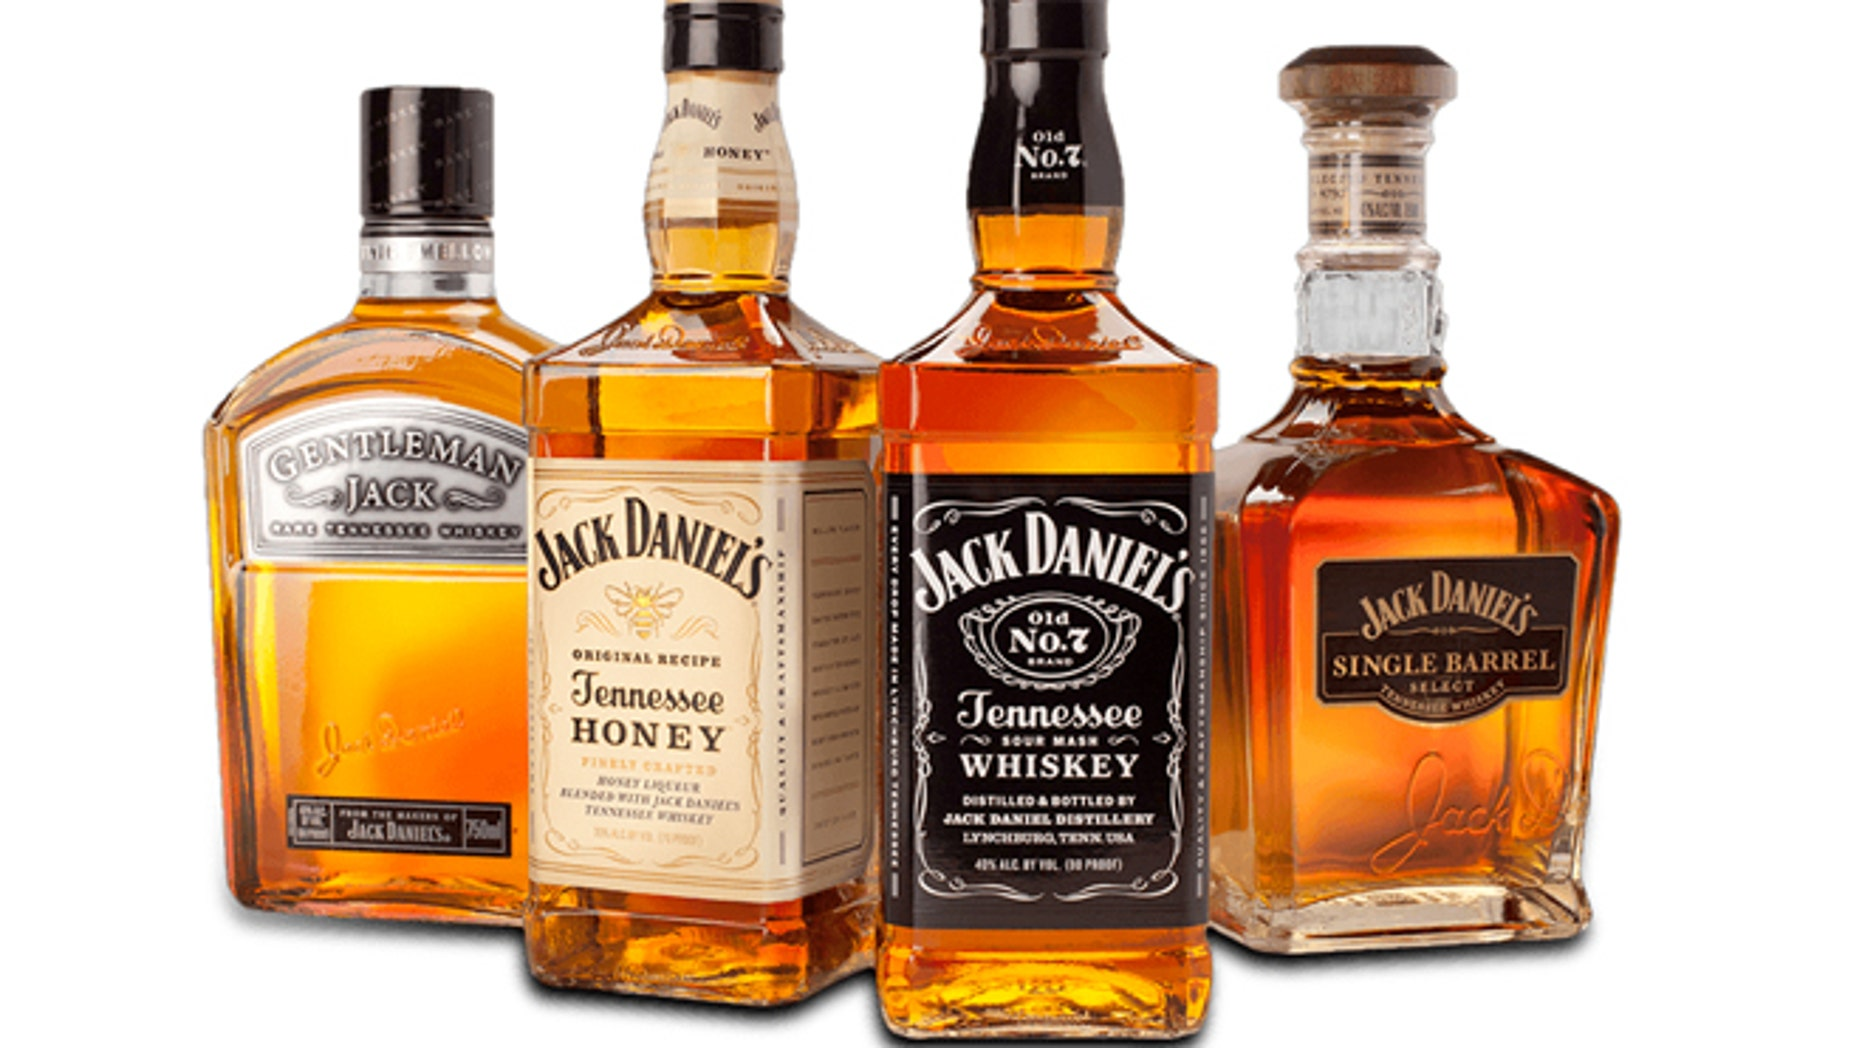 Jack Daniel's is being served a $100 million-plus expansion of its rural Tennessee distillery to flex more muscle in the growing whiskey market.